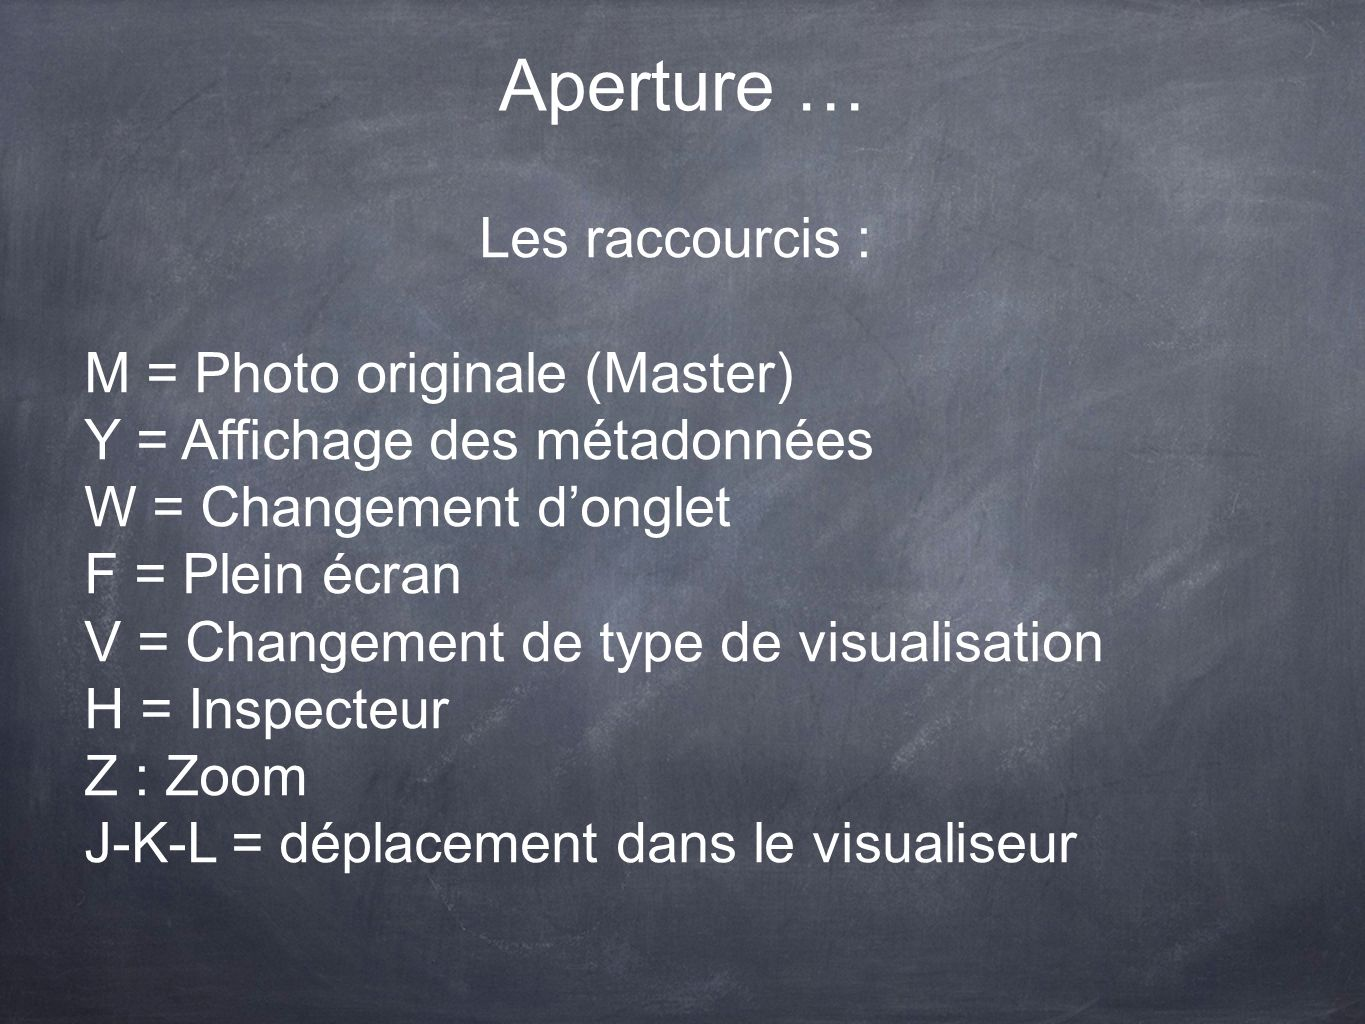 Aperture … Les raccourcis : M = Photo originale (Master)